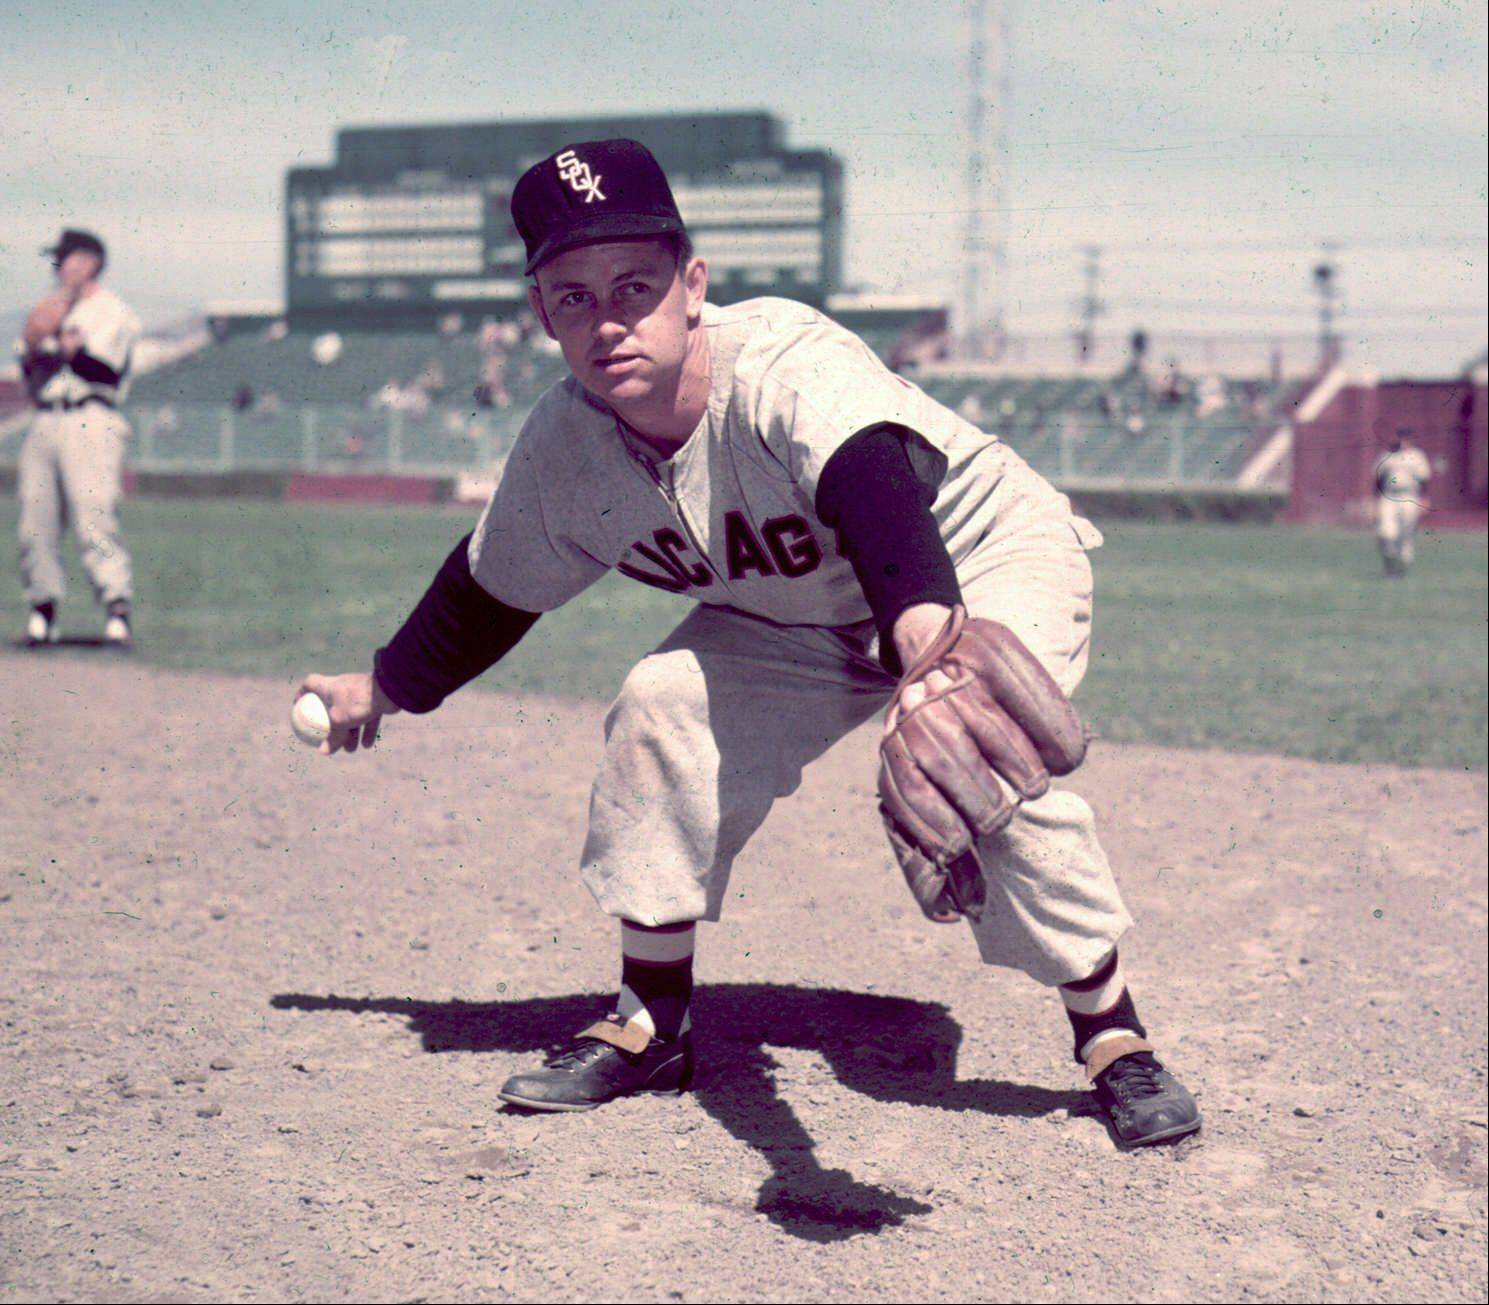 Chicago White Sox Nellie Fox, shown in this 1953 photo.